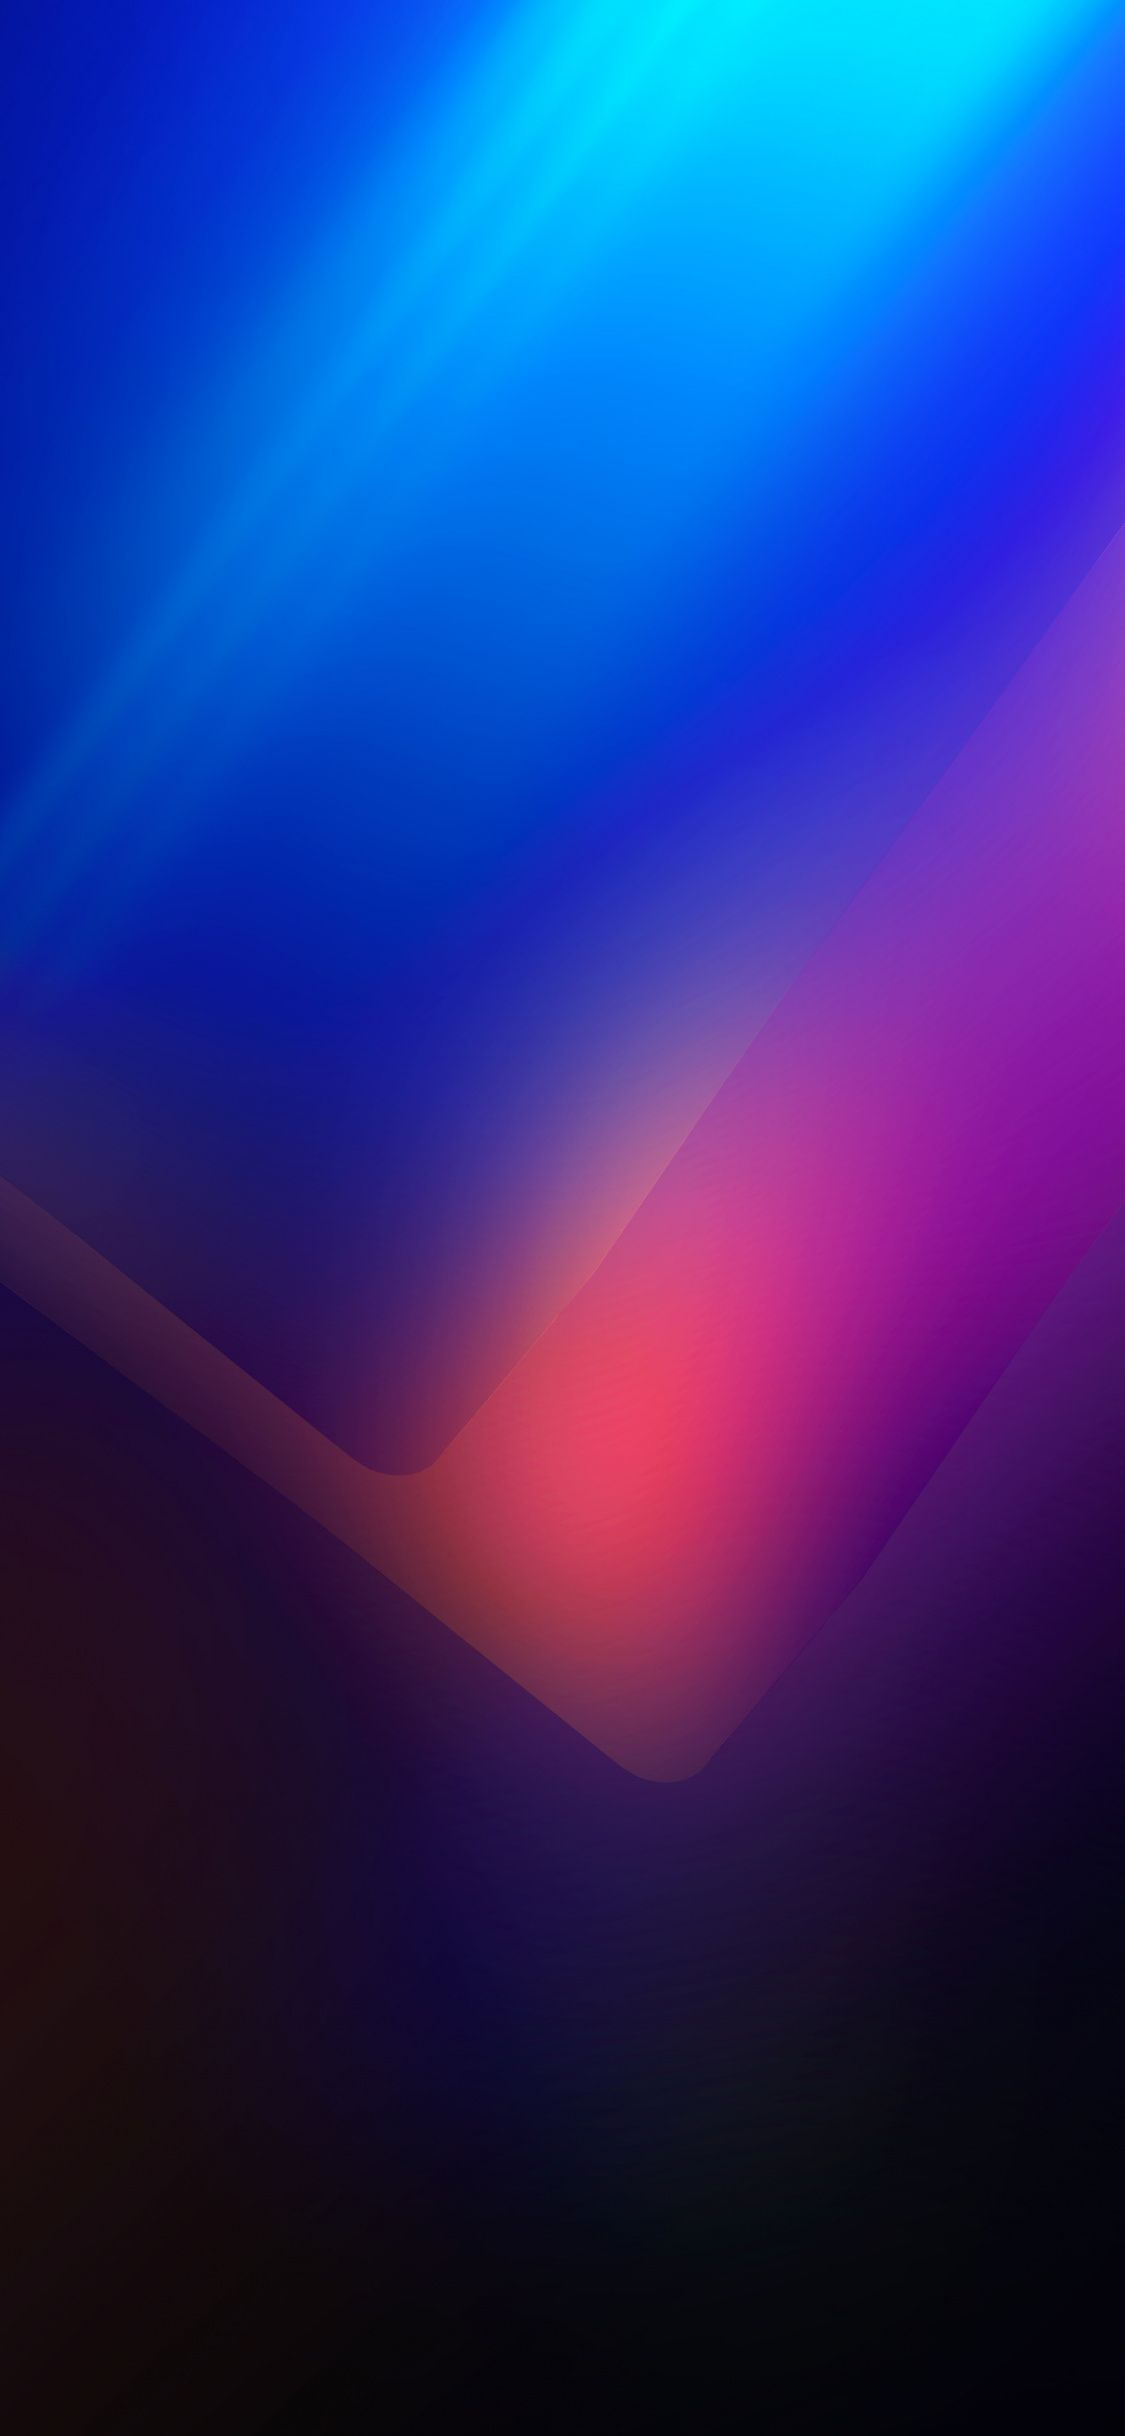 Download 1152x864 Wallpaper Vibrant And Vivid Edge Dark Gradient Colorful Iphone X Cool Wallpapers For Phones Abstract Backgrounds Beach Sunset Wallpaper